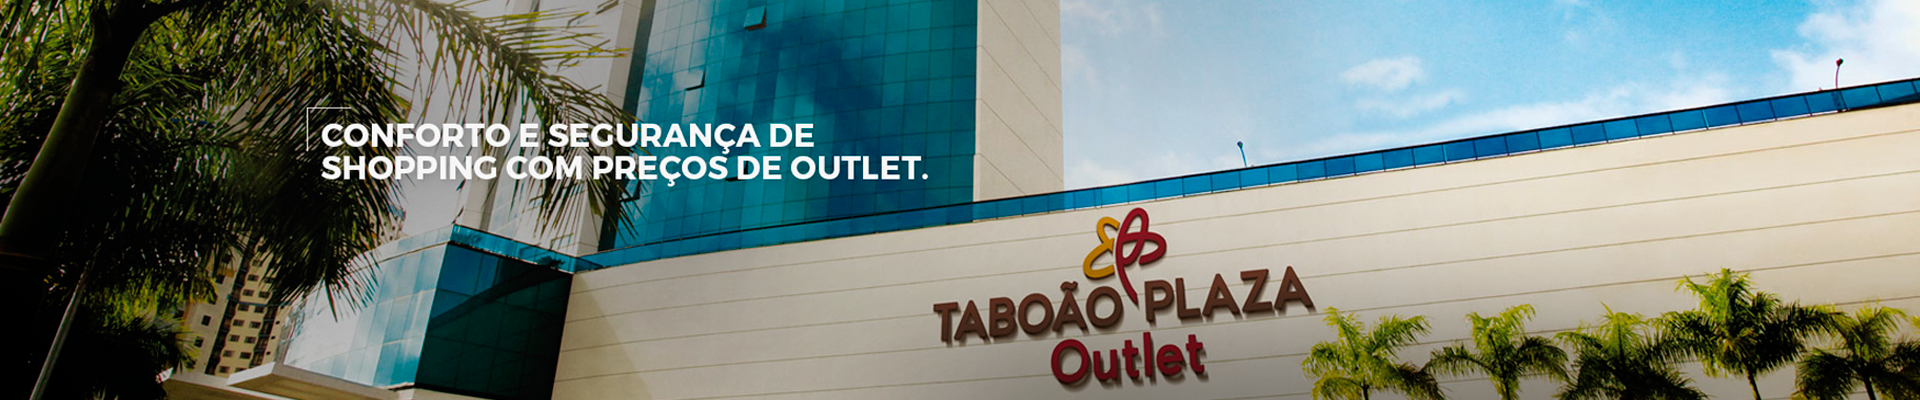 Taboão Plaza Outlet